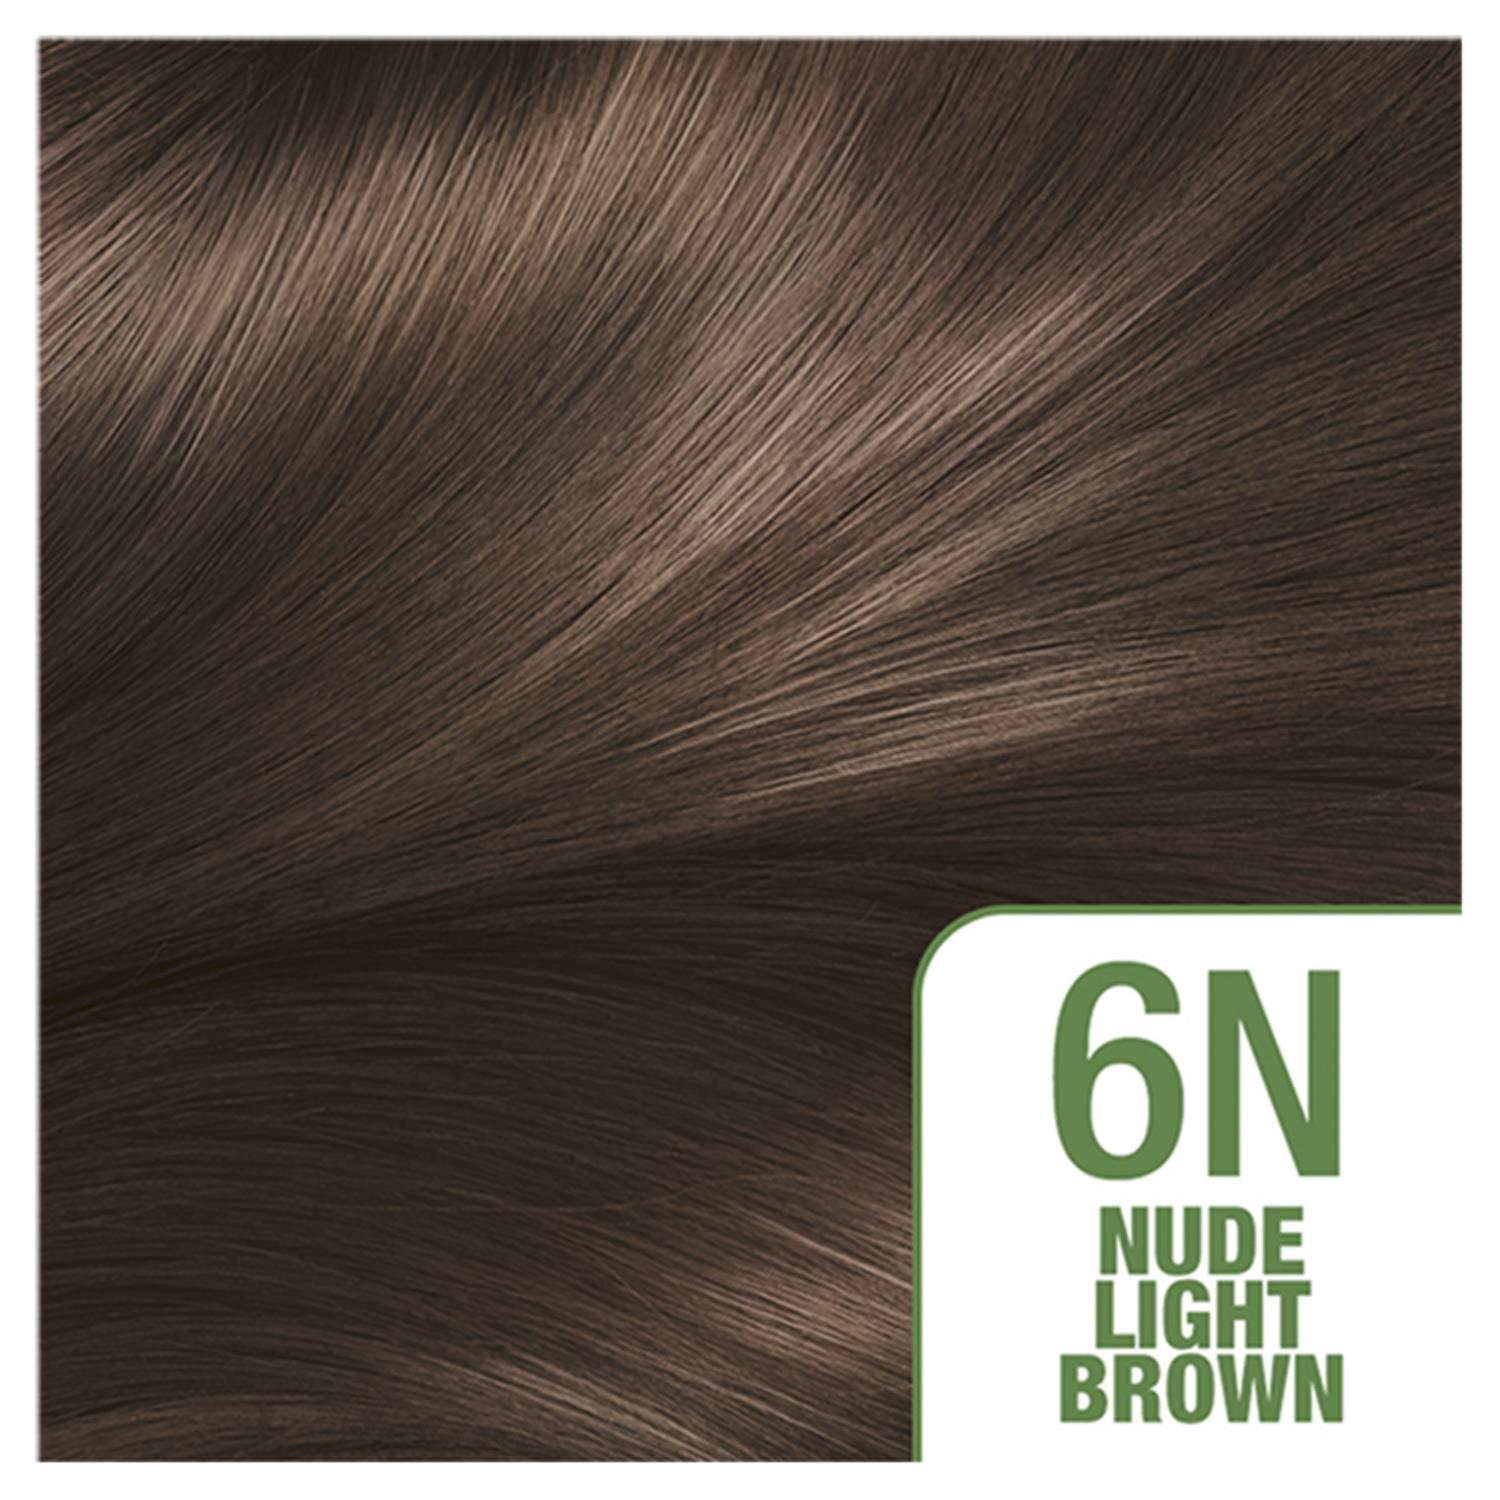 thumbnail 217 - 3 Pack Garnier Nutrisse Permanent Hair Dye With Different Shades